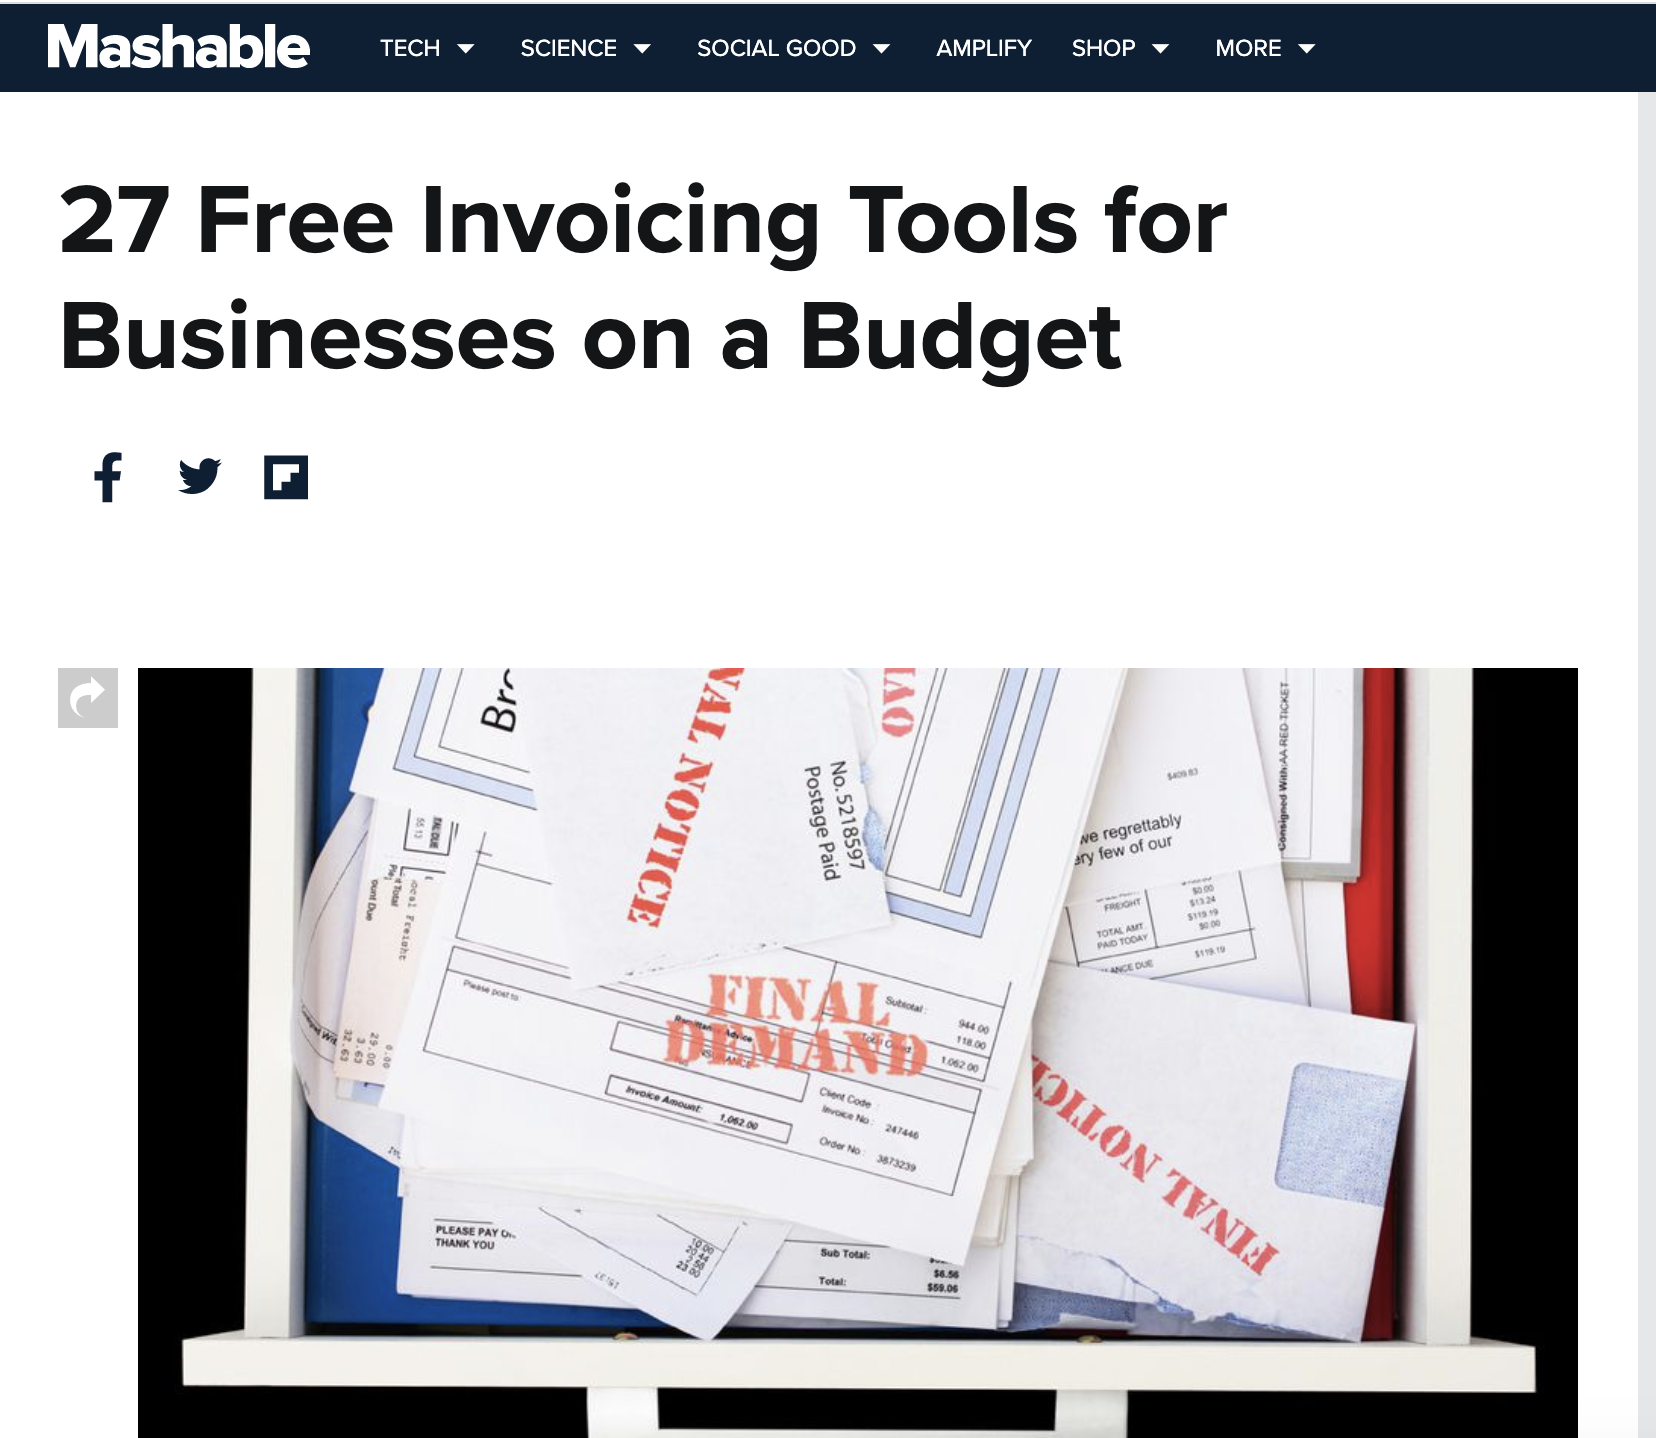 Mashable - Tools for Businesses on a Budget